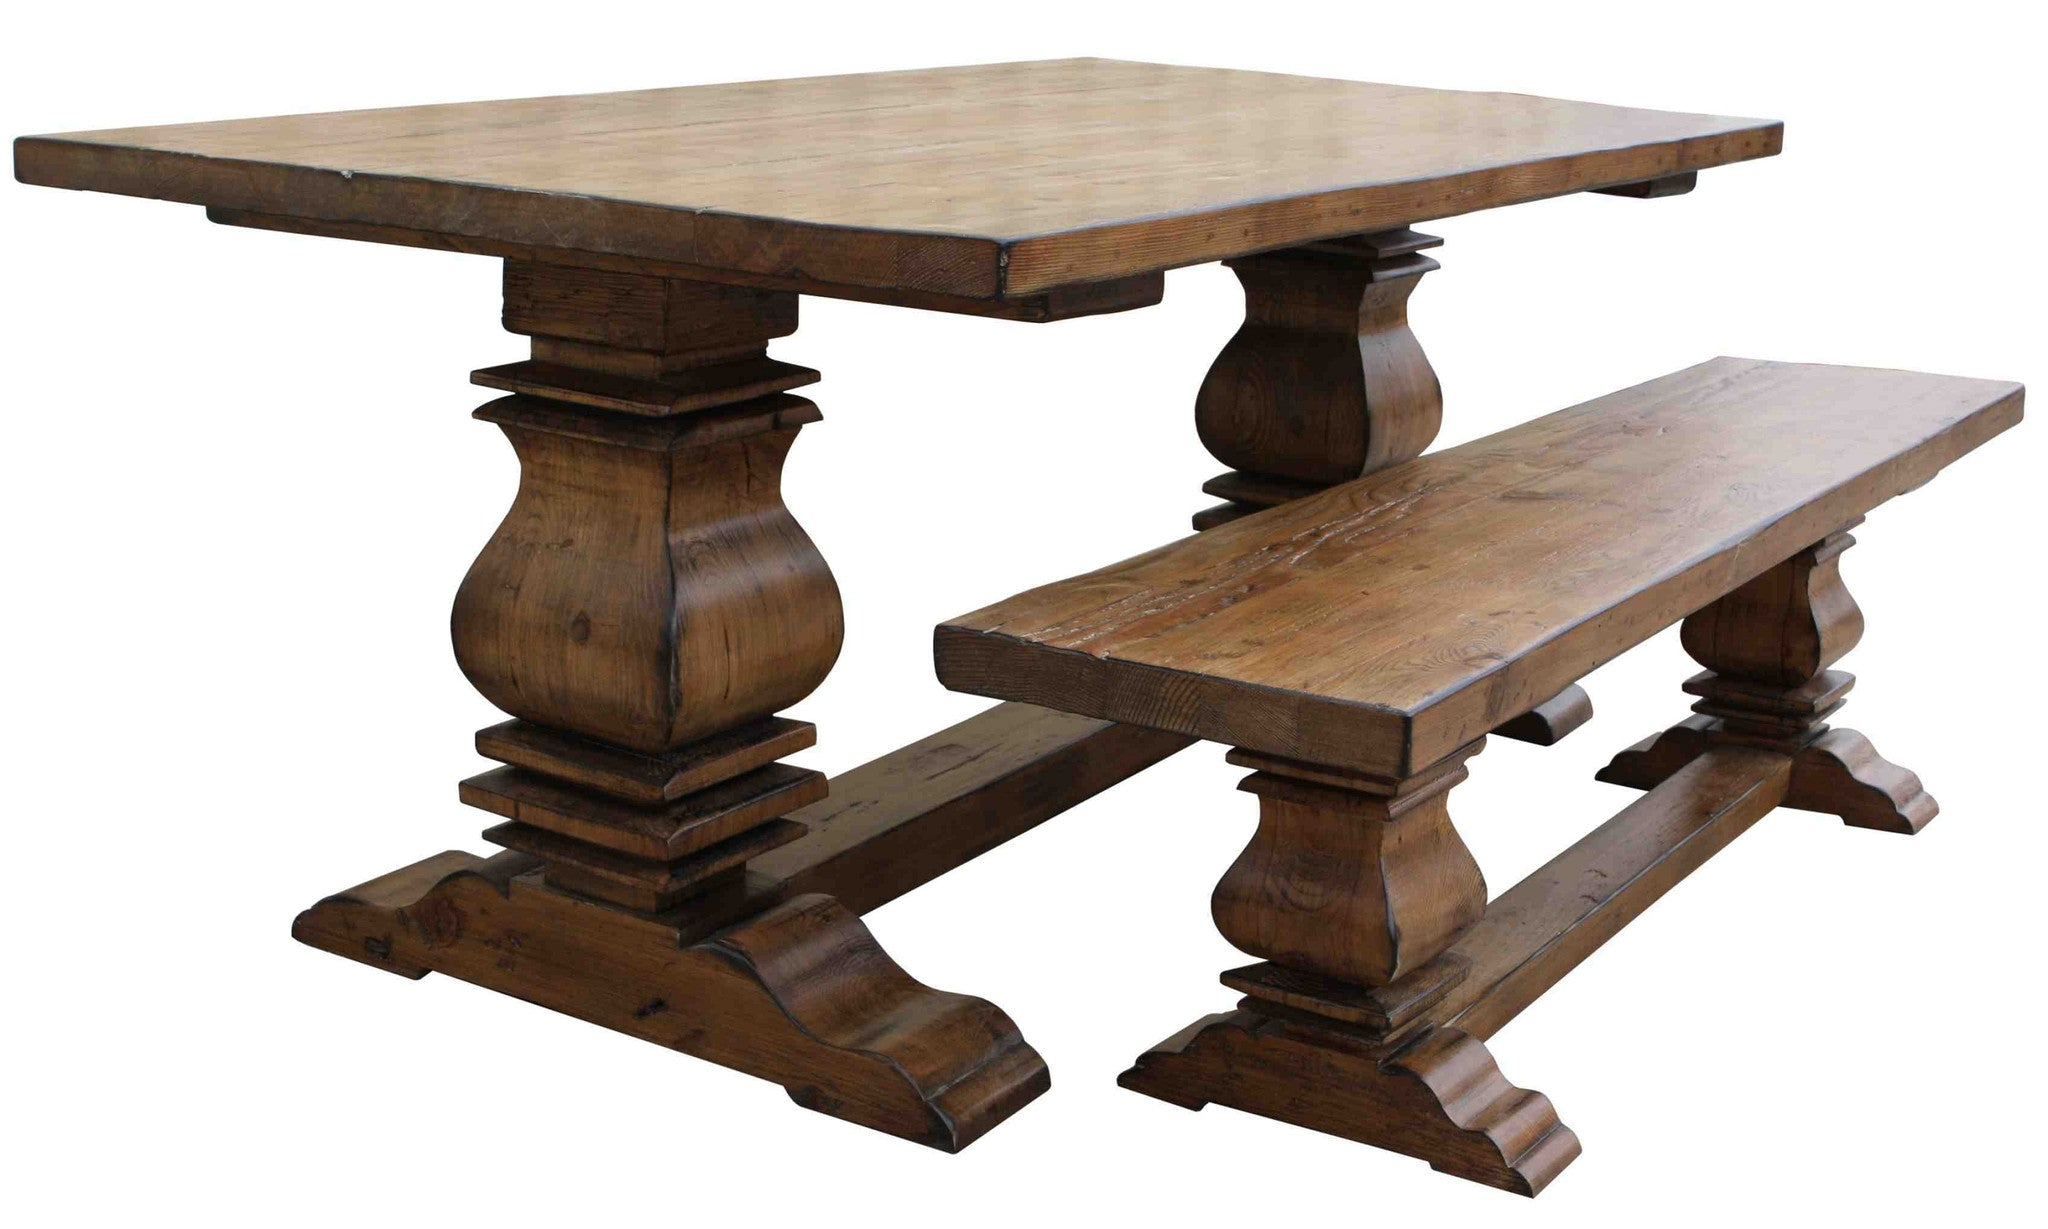 Custom Reclaimed Wood Trestle Dining Room Tables Handmade ...